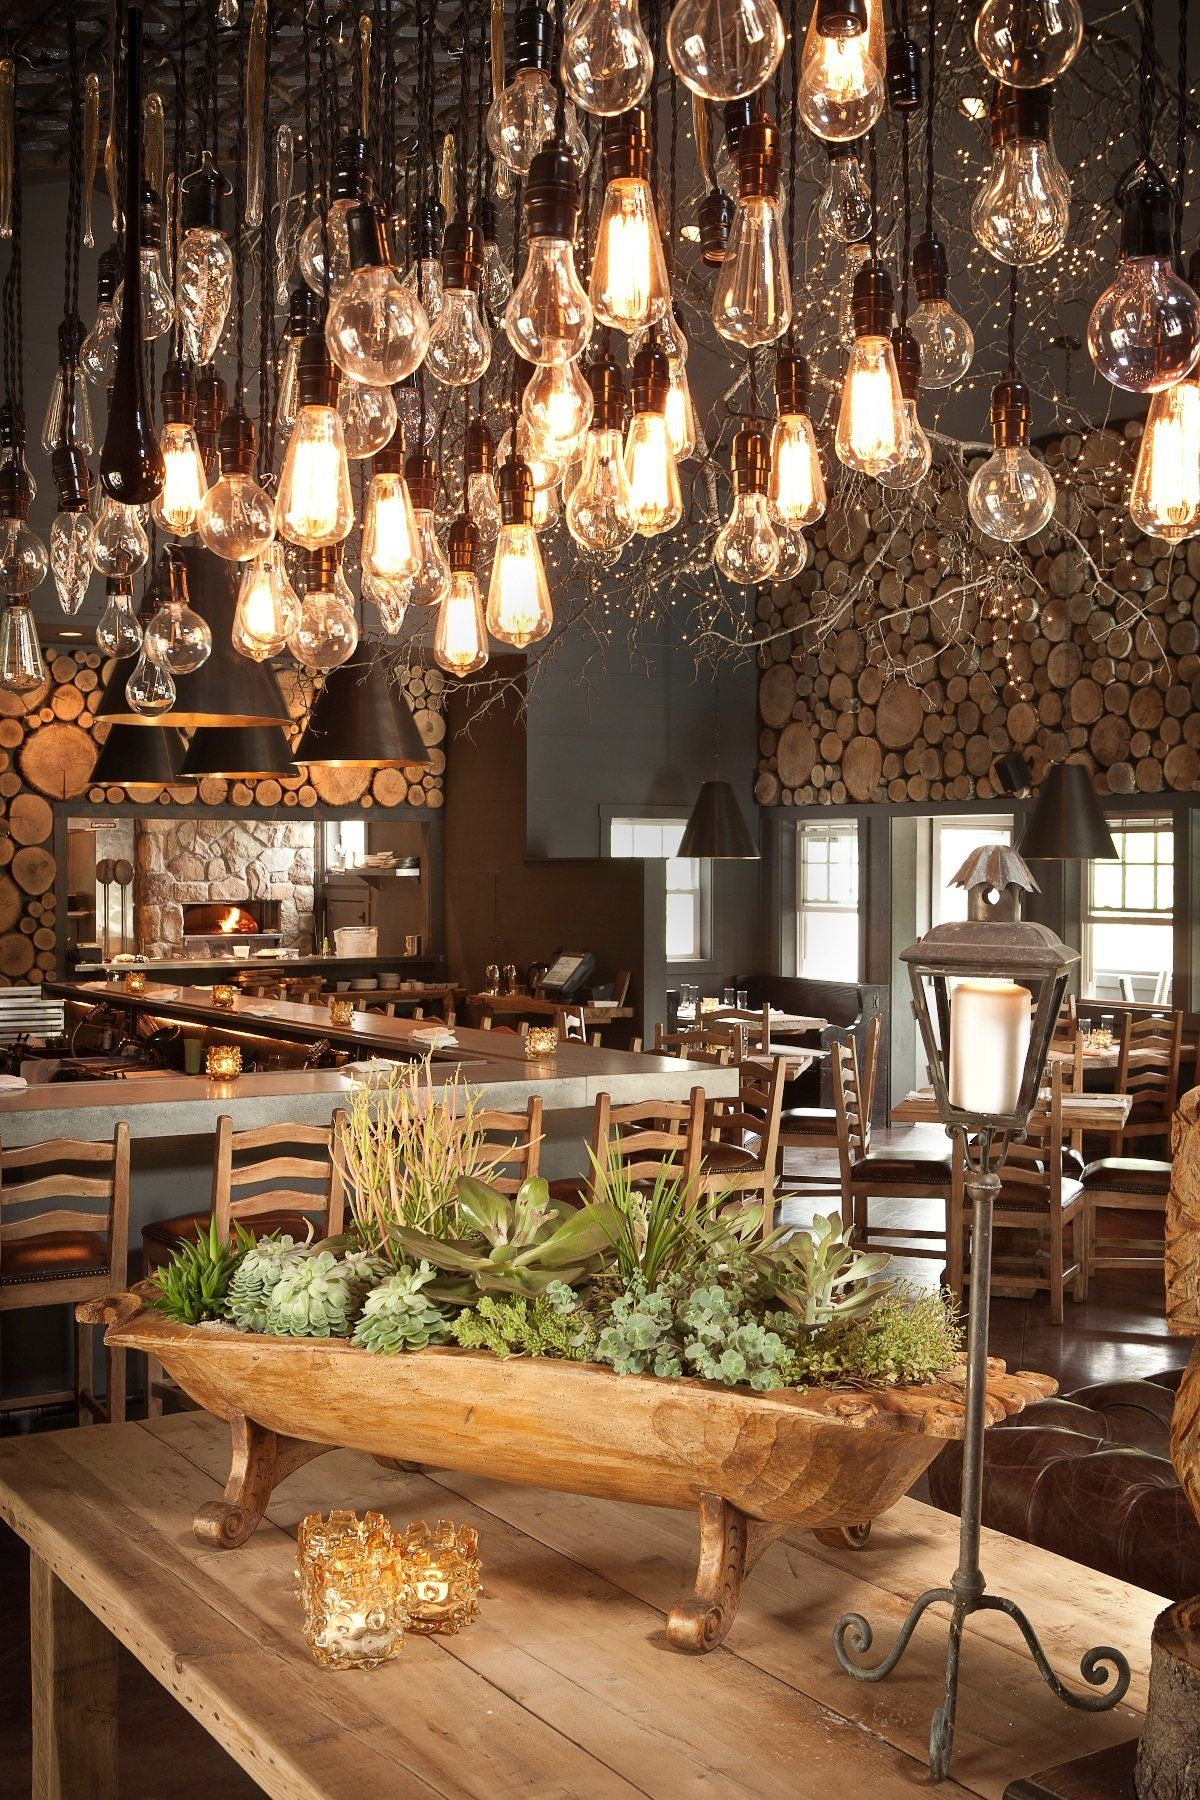 Rustic Chic Restaurant With Pendant Lights Interior